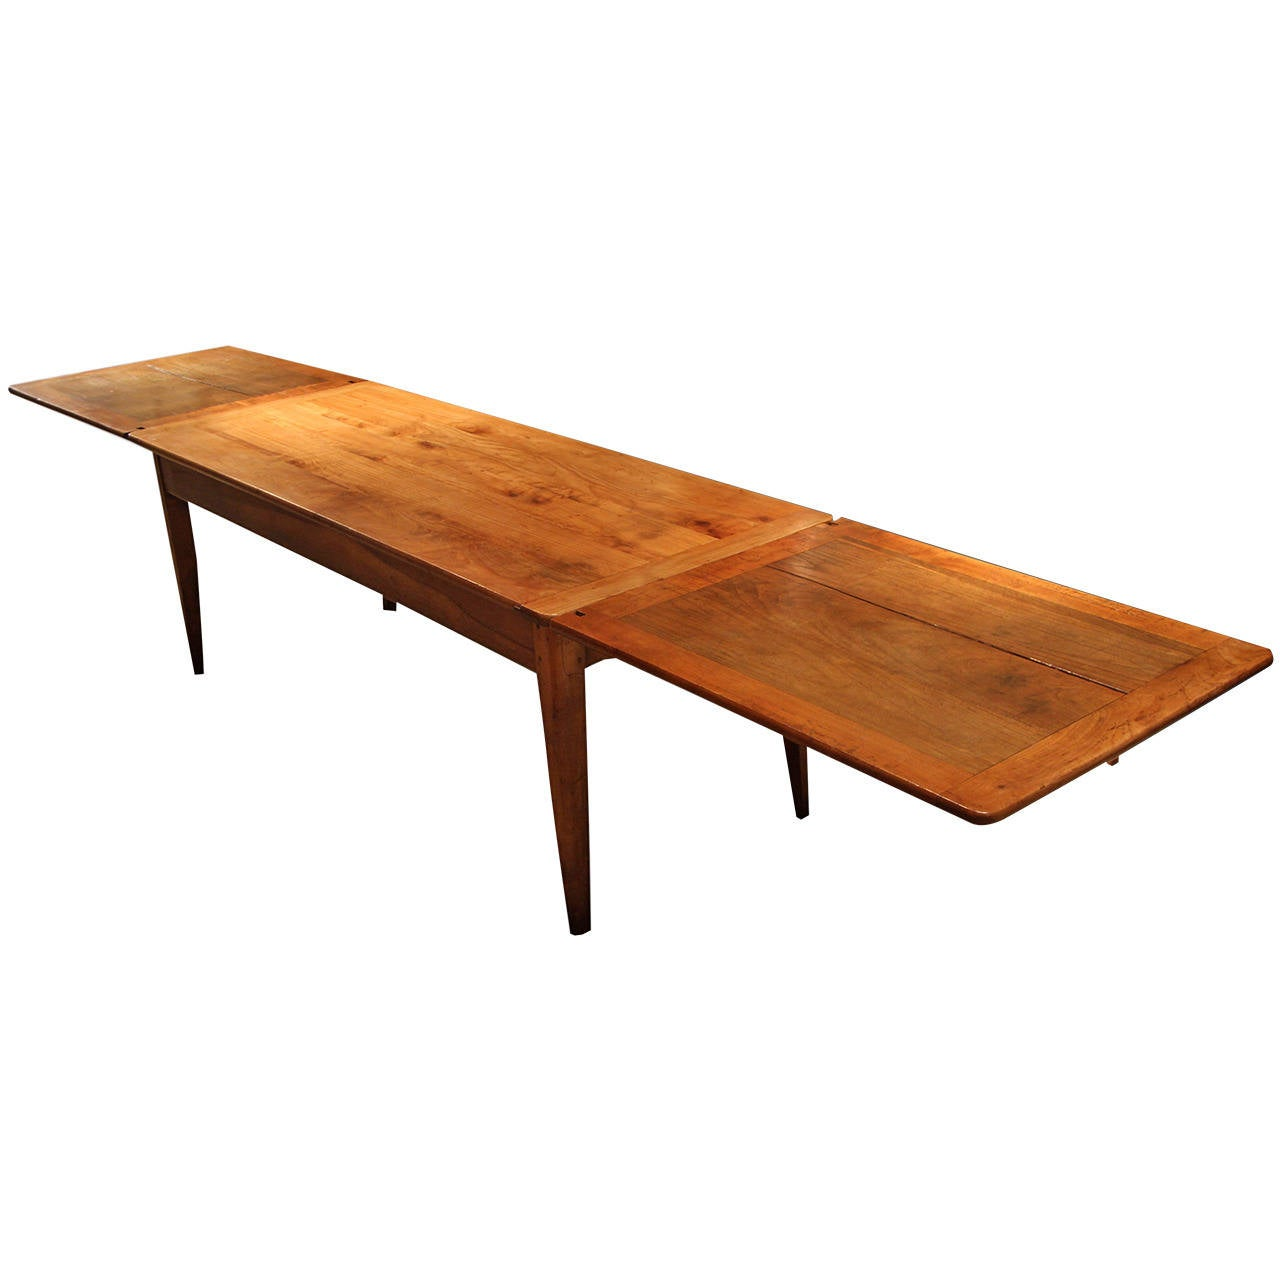 Good quality cherry wood farmhouse table extender breton for Quality wood dining tables